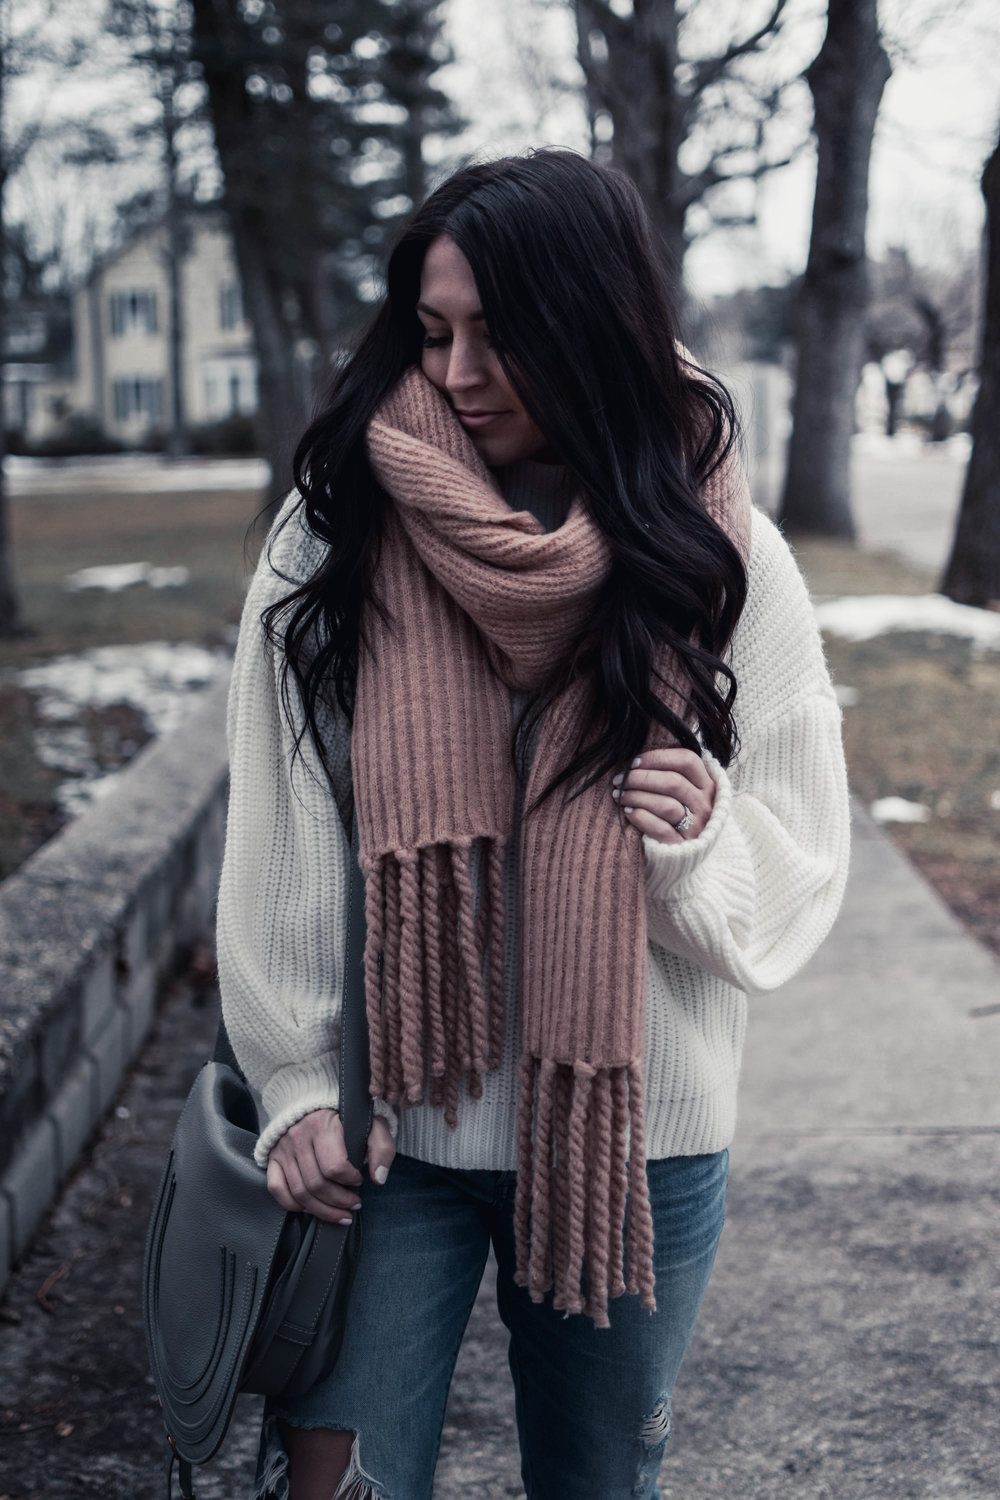 balloon sleeve sweater + cozy blanket scarf | pine barren beauty | sanctuary sweater, distressed denim, free people scarf, winter outfit idea, winter outfit inspiration, cozy outfit idea